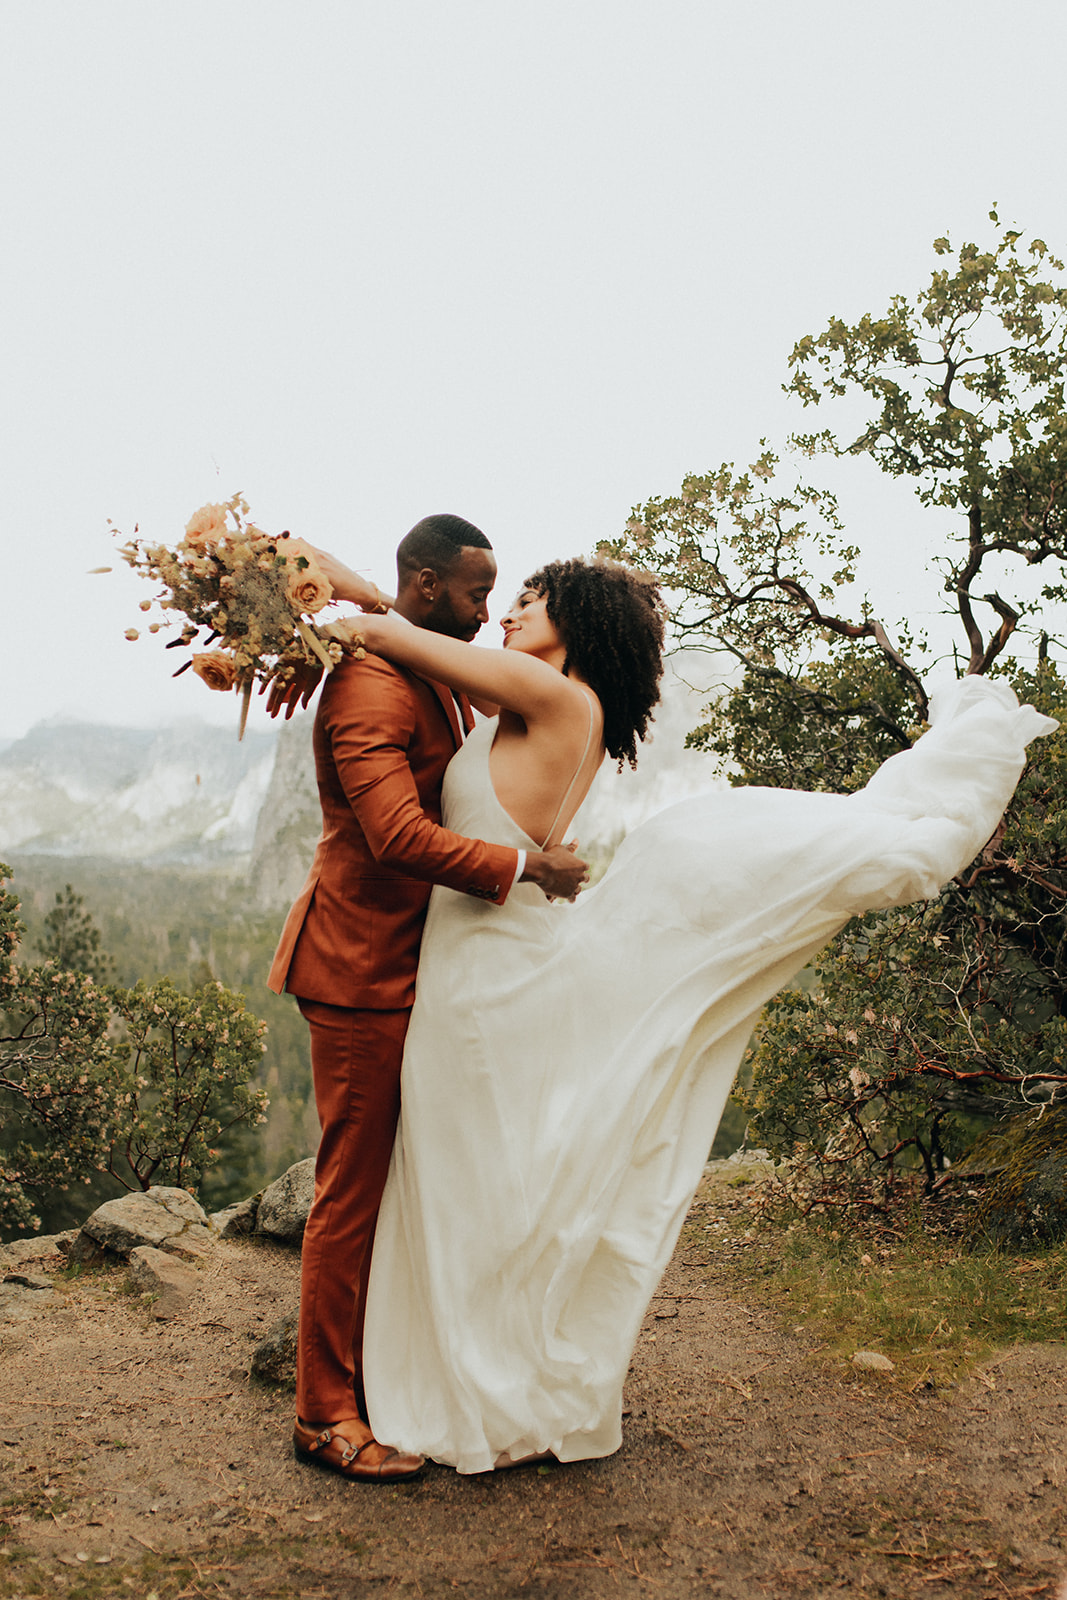 Yosemite_Elopement_Hannah_Alena_Photo_Portland_Wedding_Photographer-84.jpg